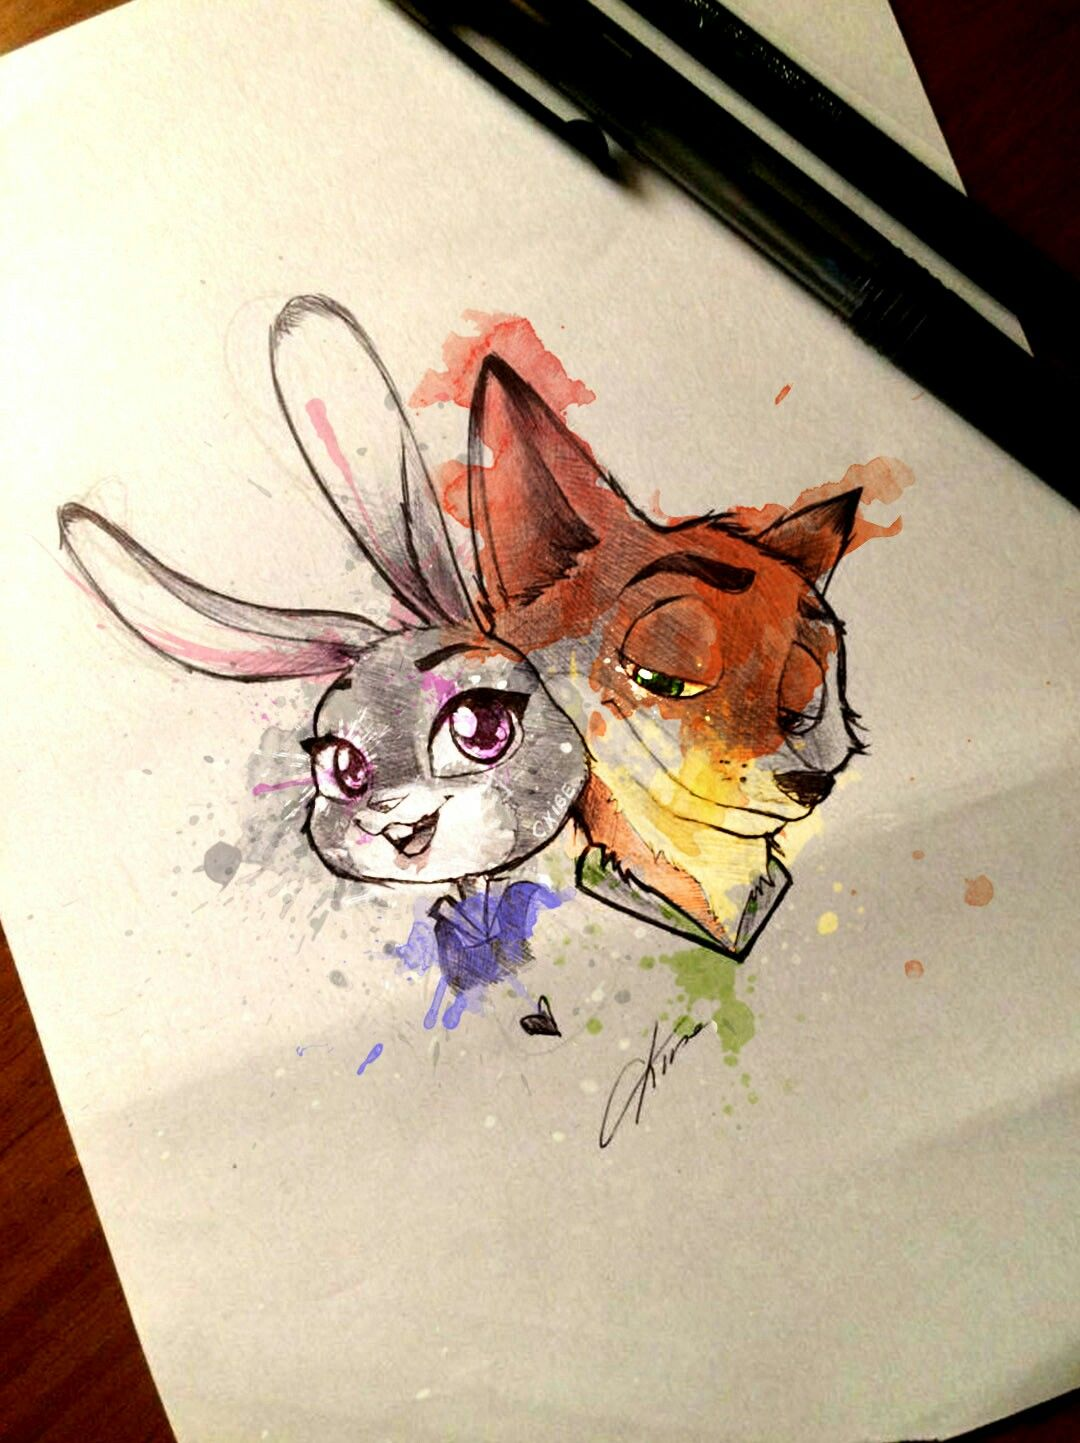 Zootopia zootopia pinterest zootopia zootopia fanart and